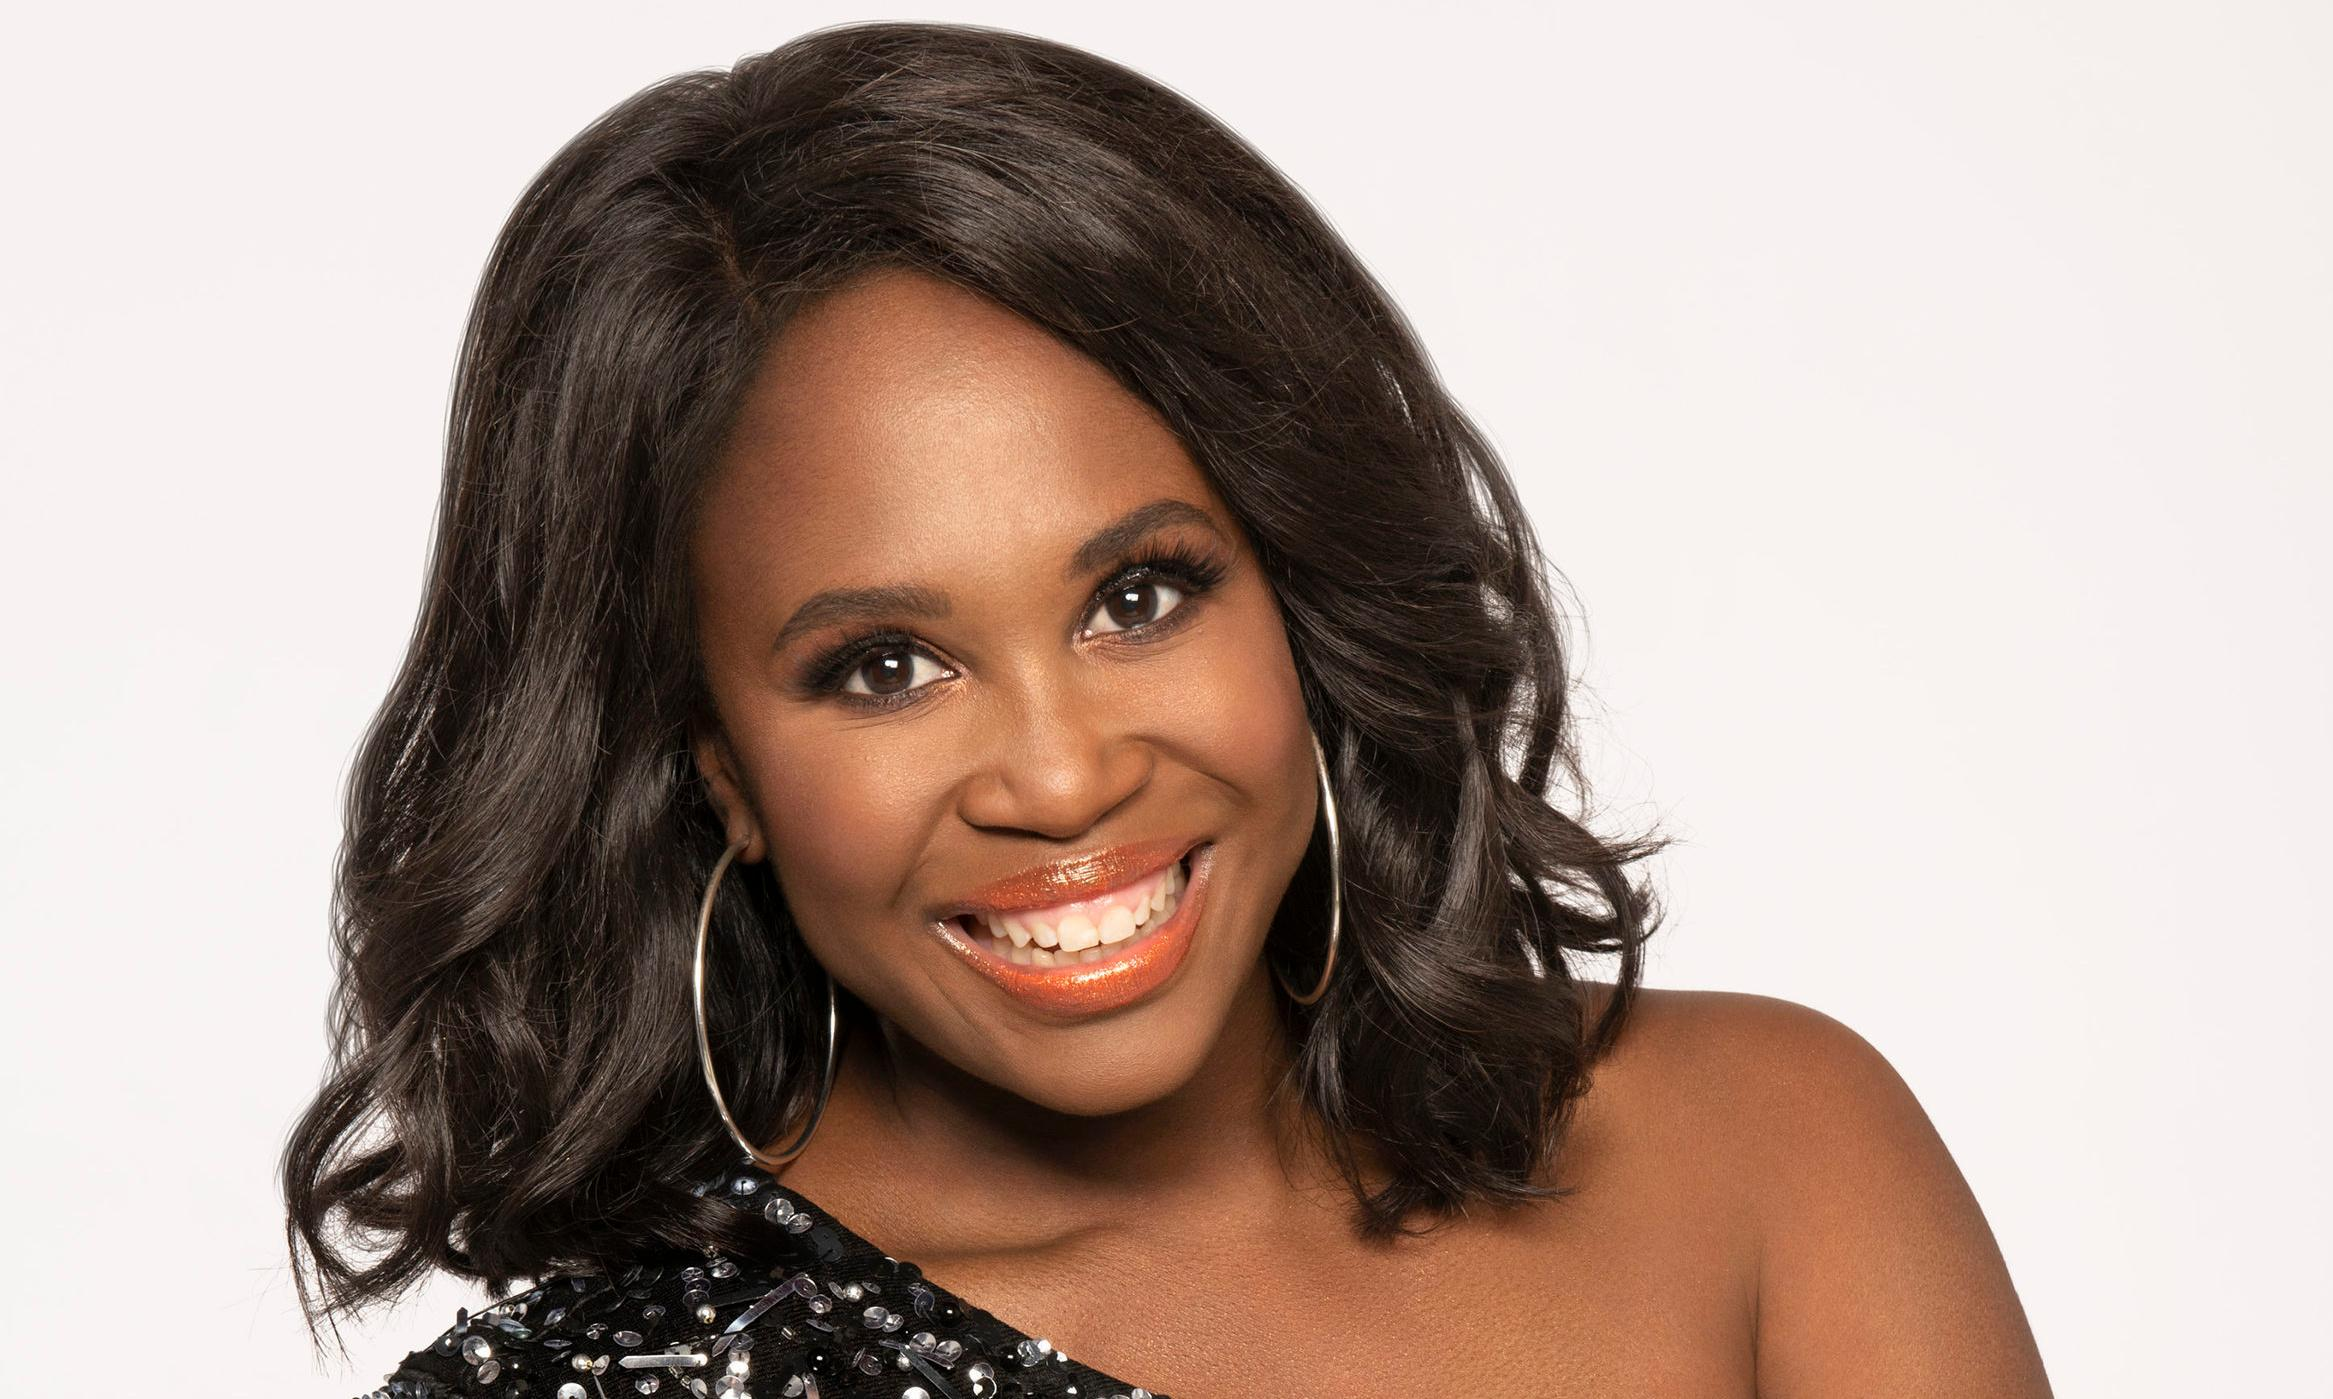 Motsi Mabuse to join Strictly Come Dancing judging panel